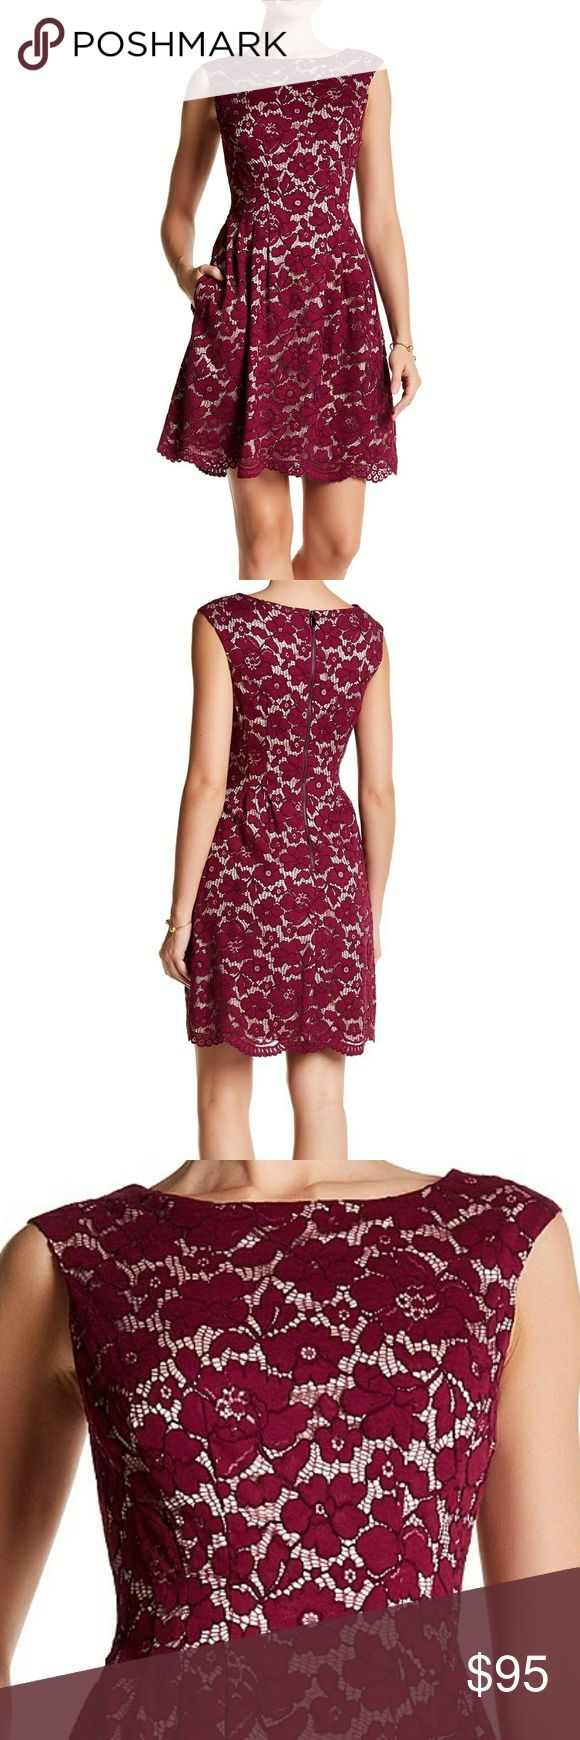 """Vince Camuto Fit and Flare Dress A pretty lace overlay defines a fun fit-and-flare dress, perfect for dancing the night away. - Boat neck - Back zip closure - Cap sleeves - Lined - Approx. 36"""" length - Imported Fiber Content: 37% cotton, 34% nylon, 29% viscose Vince Camuto Dresses Midi"""